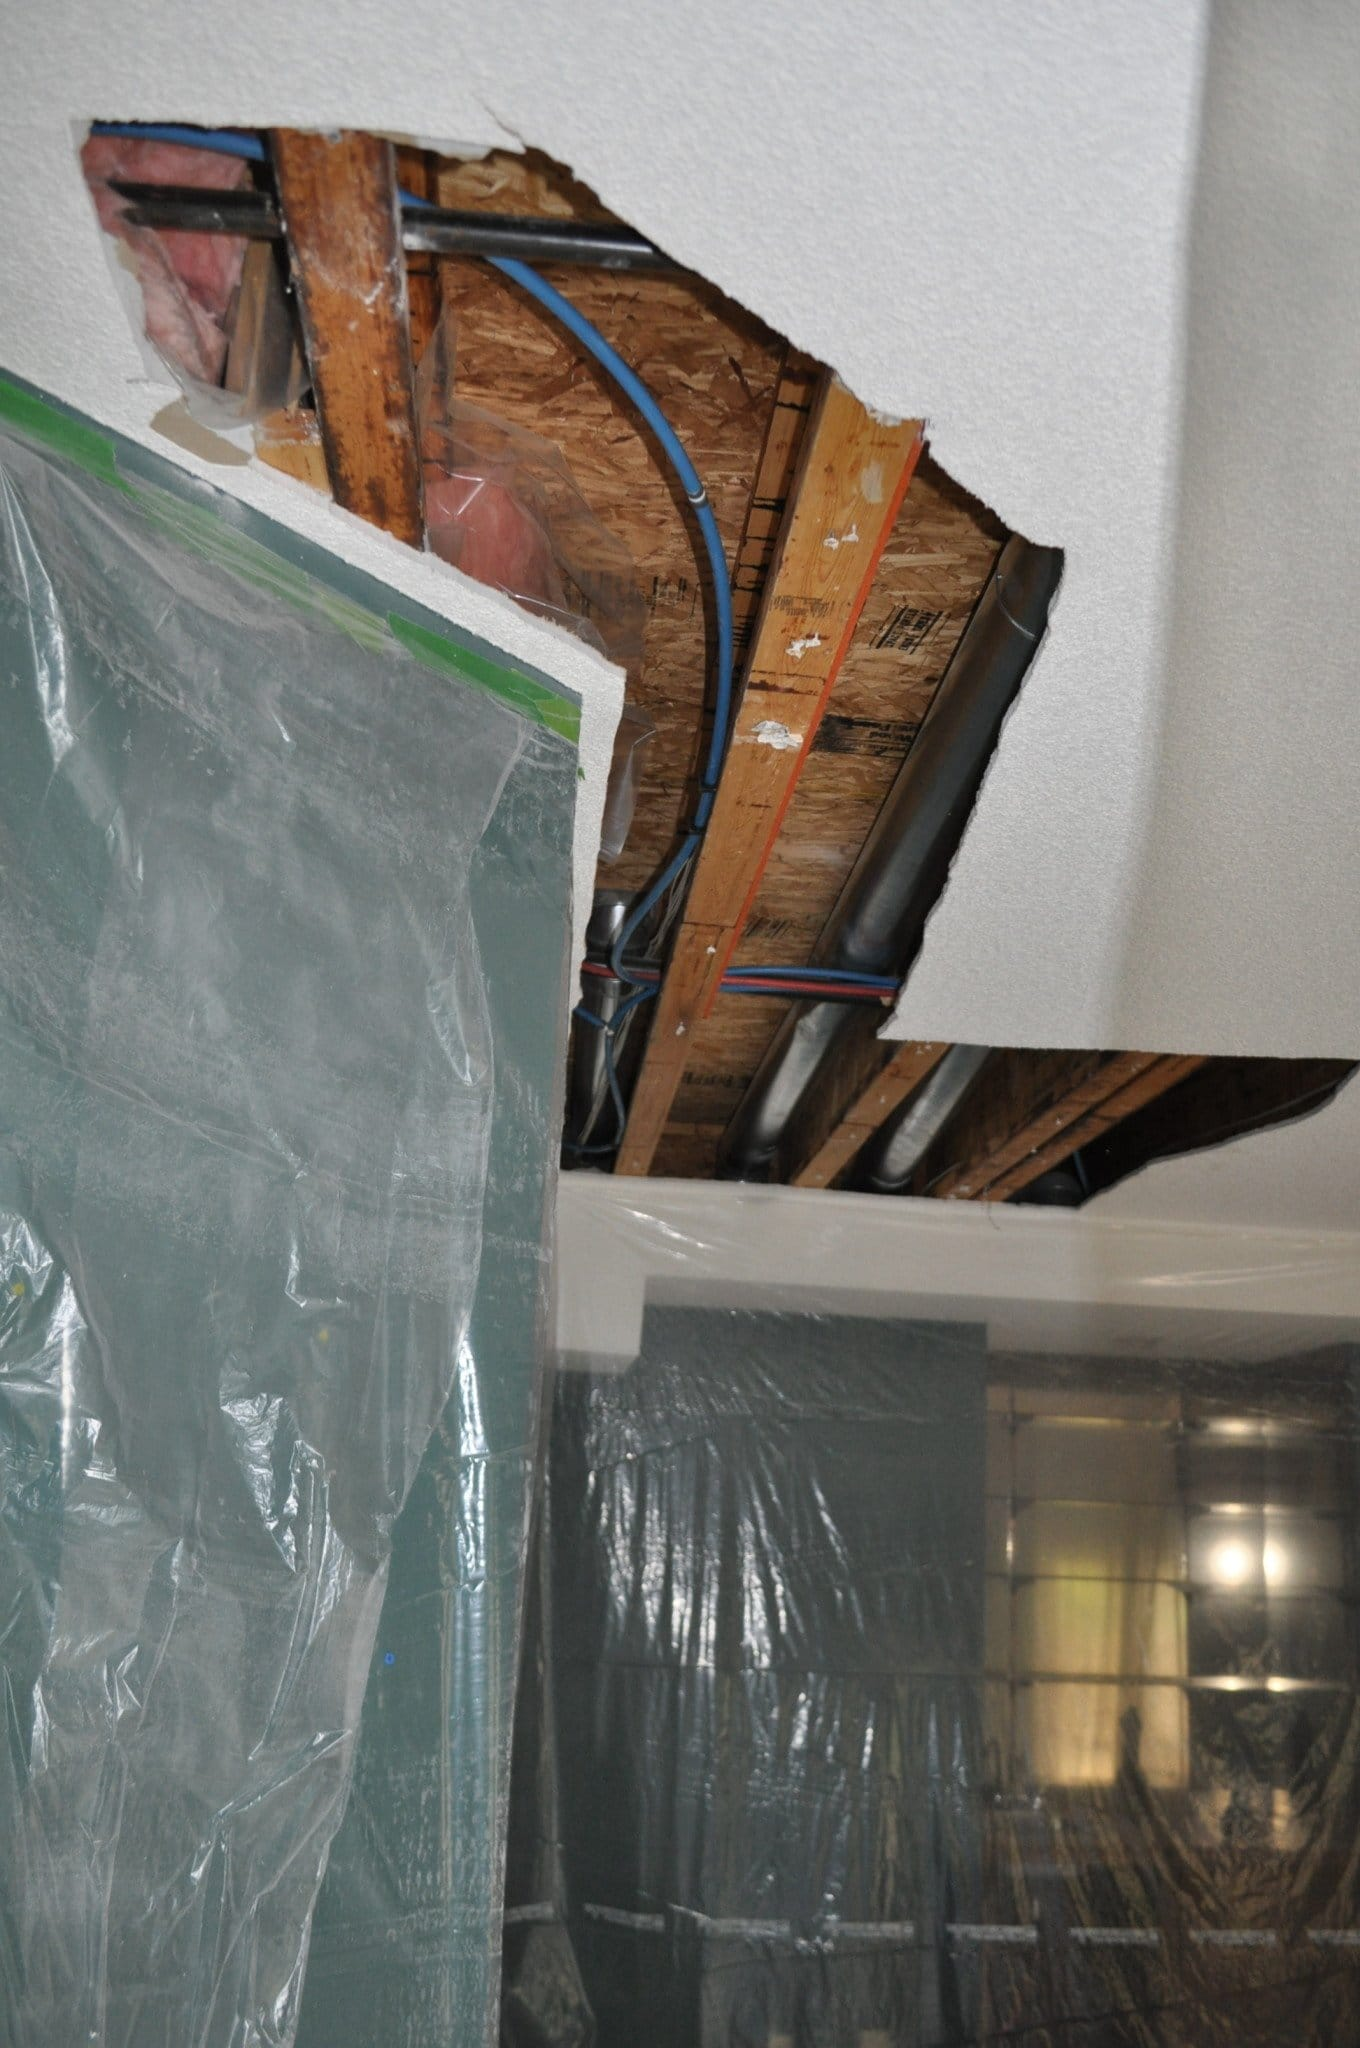 Holes are cut into the ceiling to remove the poly b piping from the customers home and replace with pex piping.